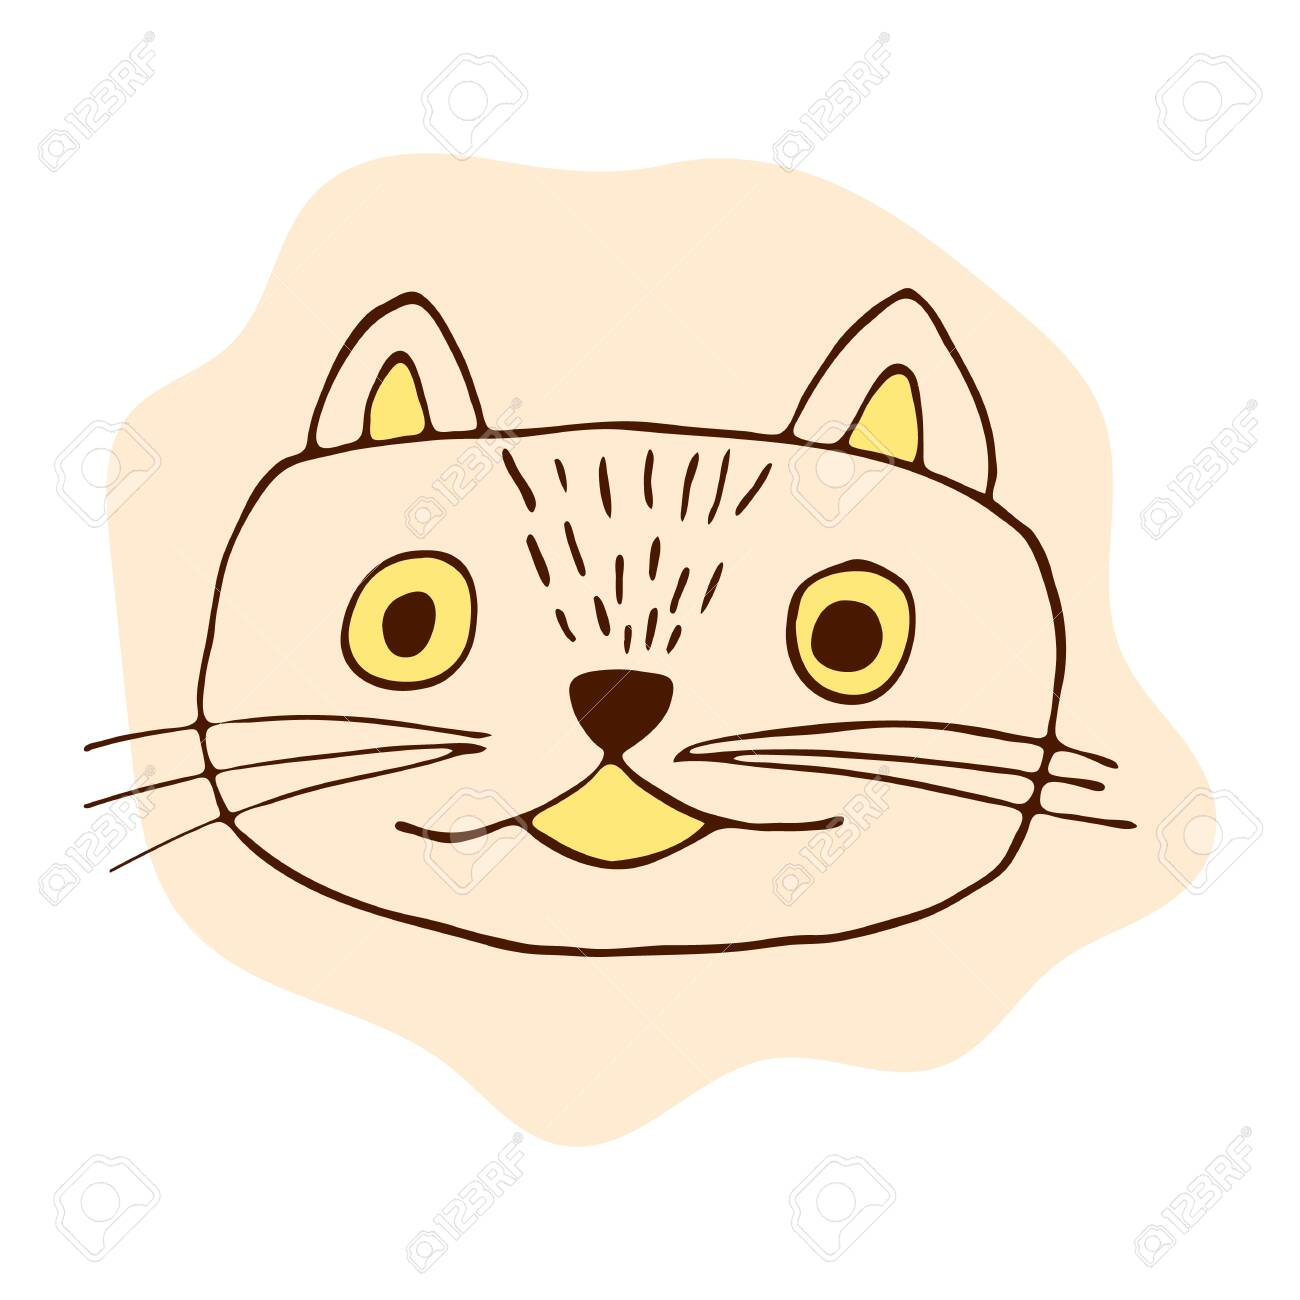 Vector Stock Kitten Illustration Orange Pink Cat In Doodle Style Royalty Free Cliparts Vectors And Stock Illustration Image 147389426